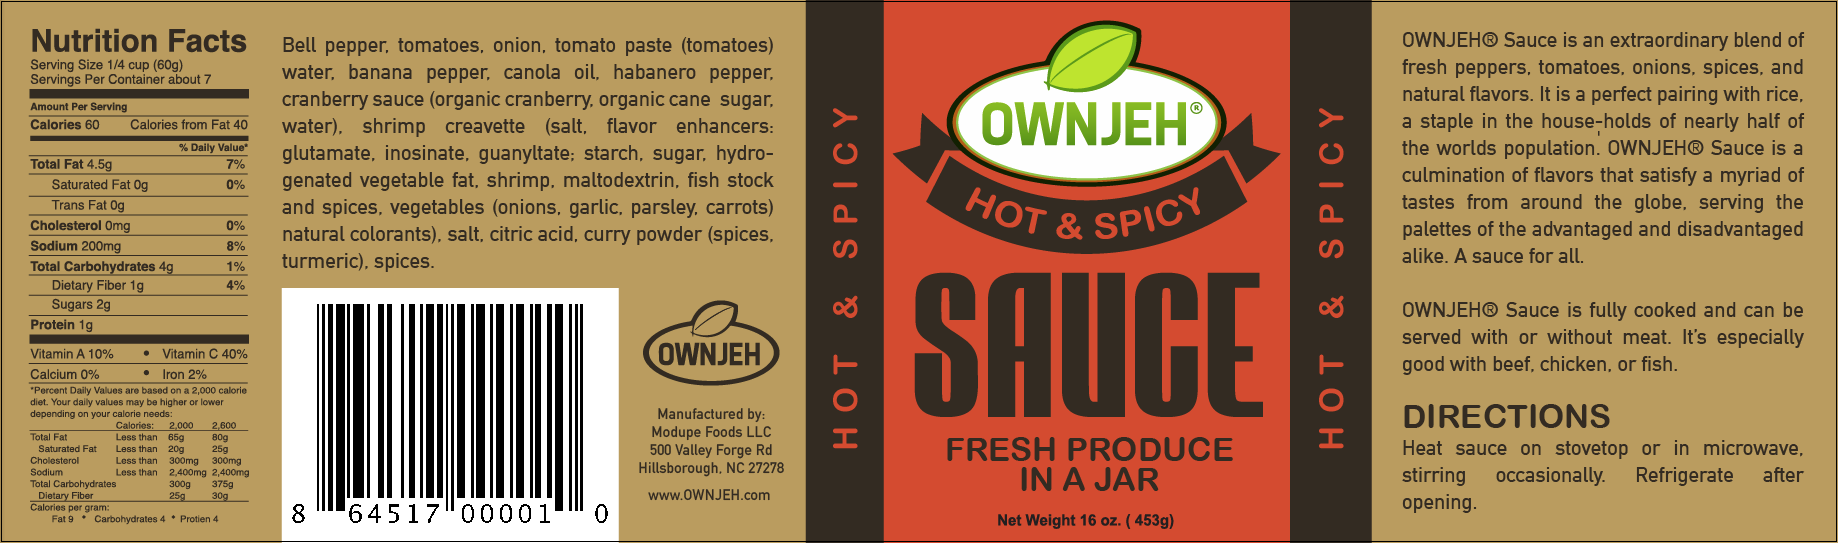 ownjeh-hot-spicy